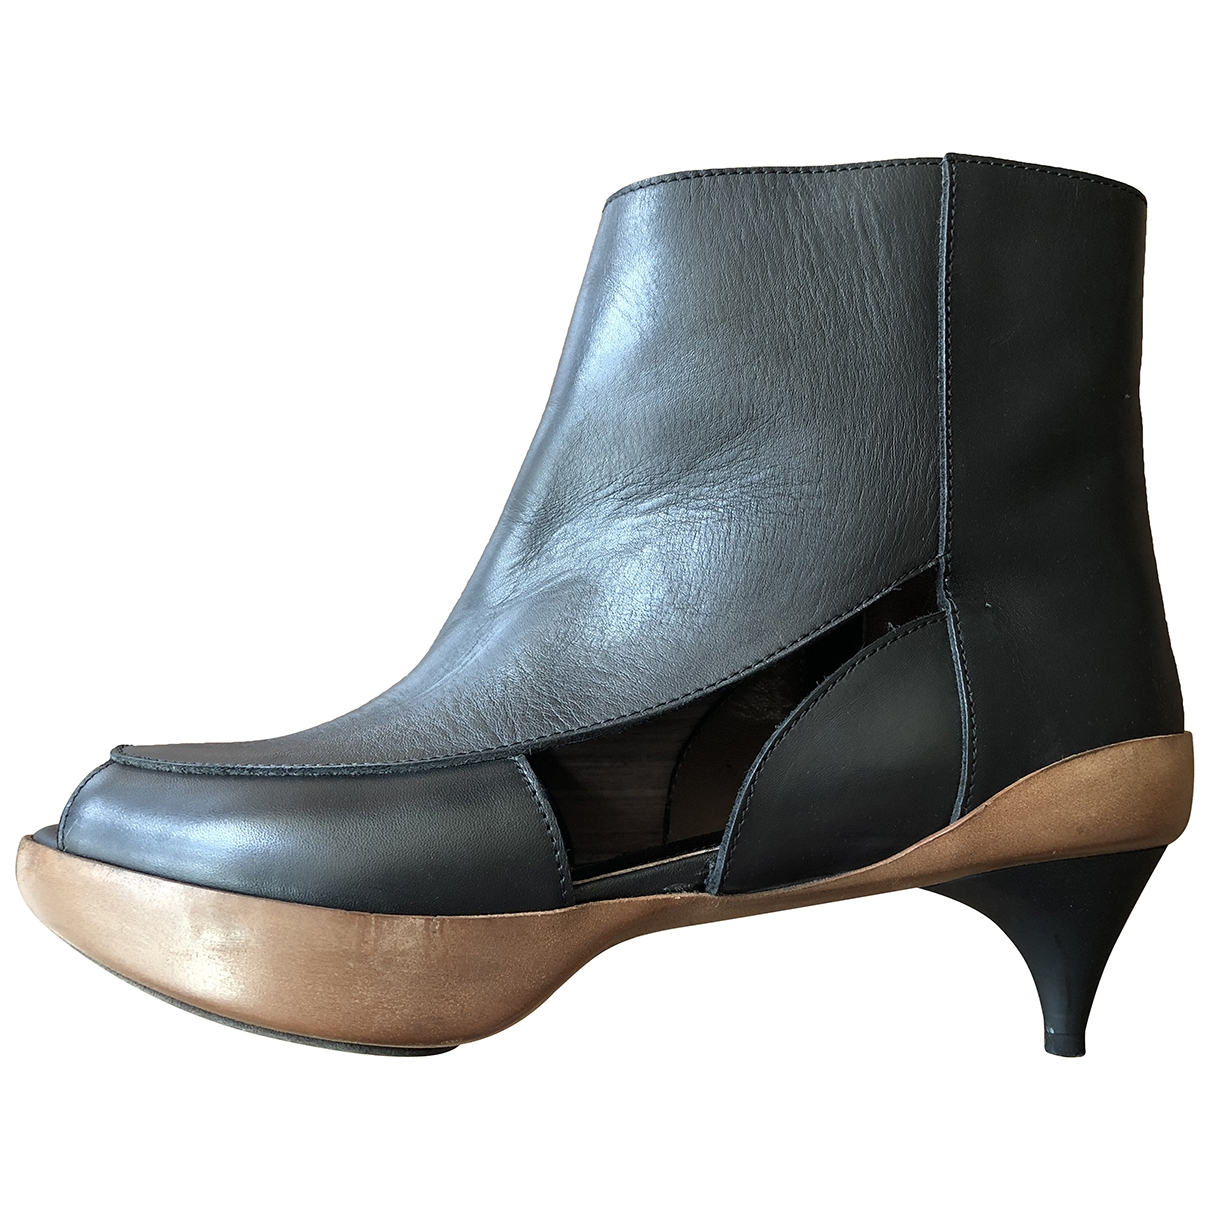 Marni \N Black Leather Ankle boots for Women 36 IT